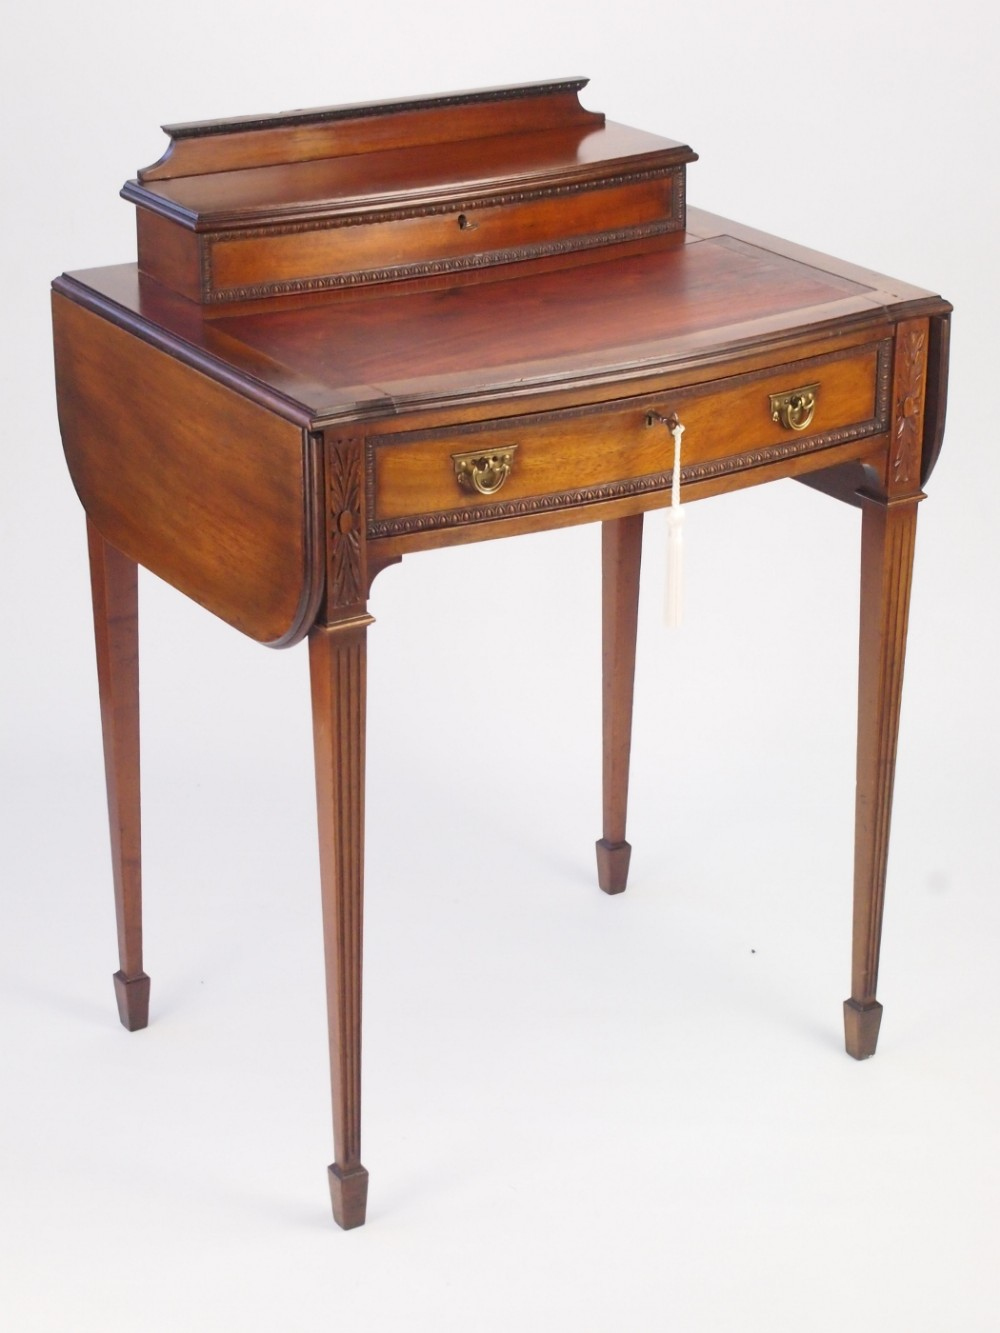 antique davenport writing desk An old english burl walnut davenport writing desk with inlay, carved supports and a tooled leather top on ringed bun feet circa 1860.